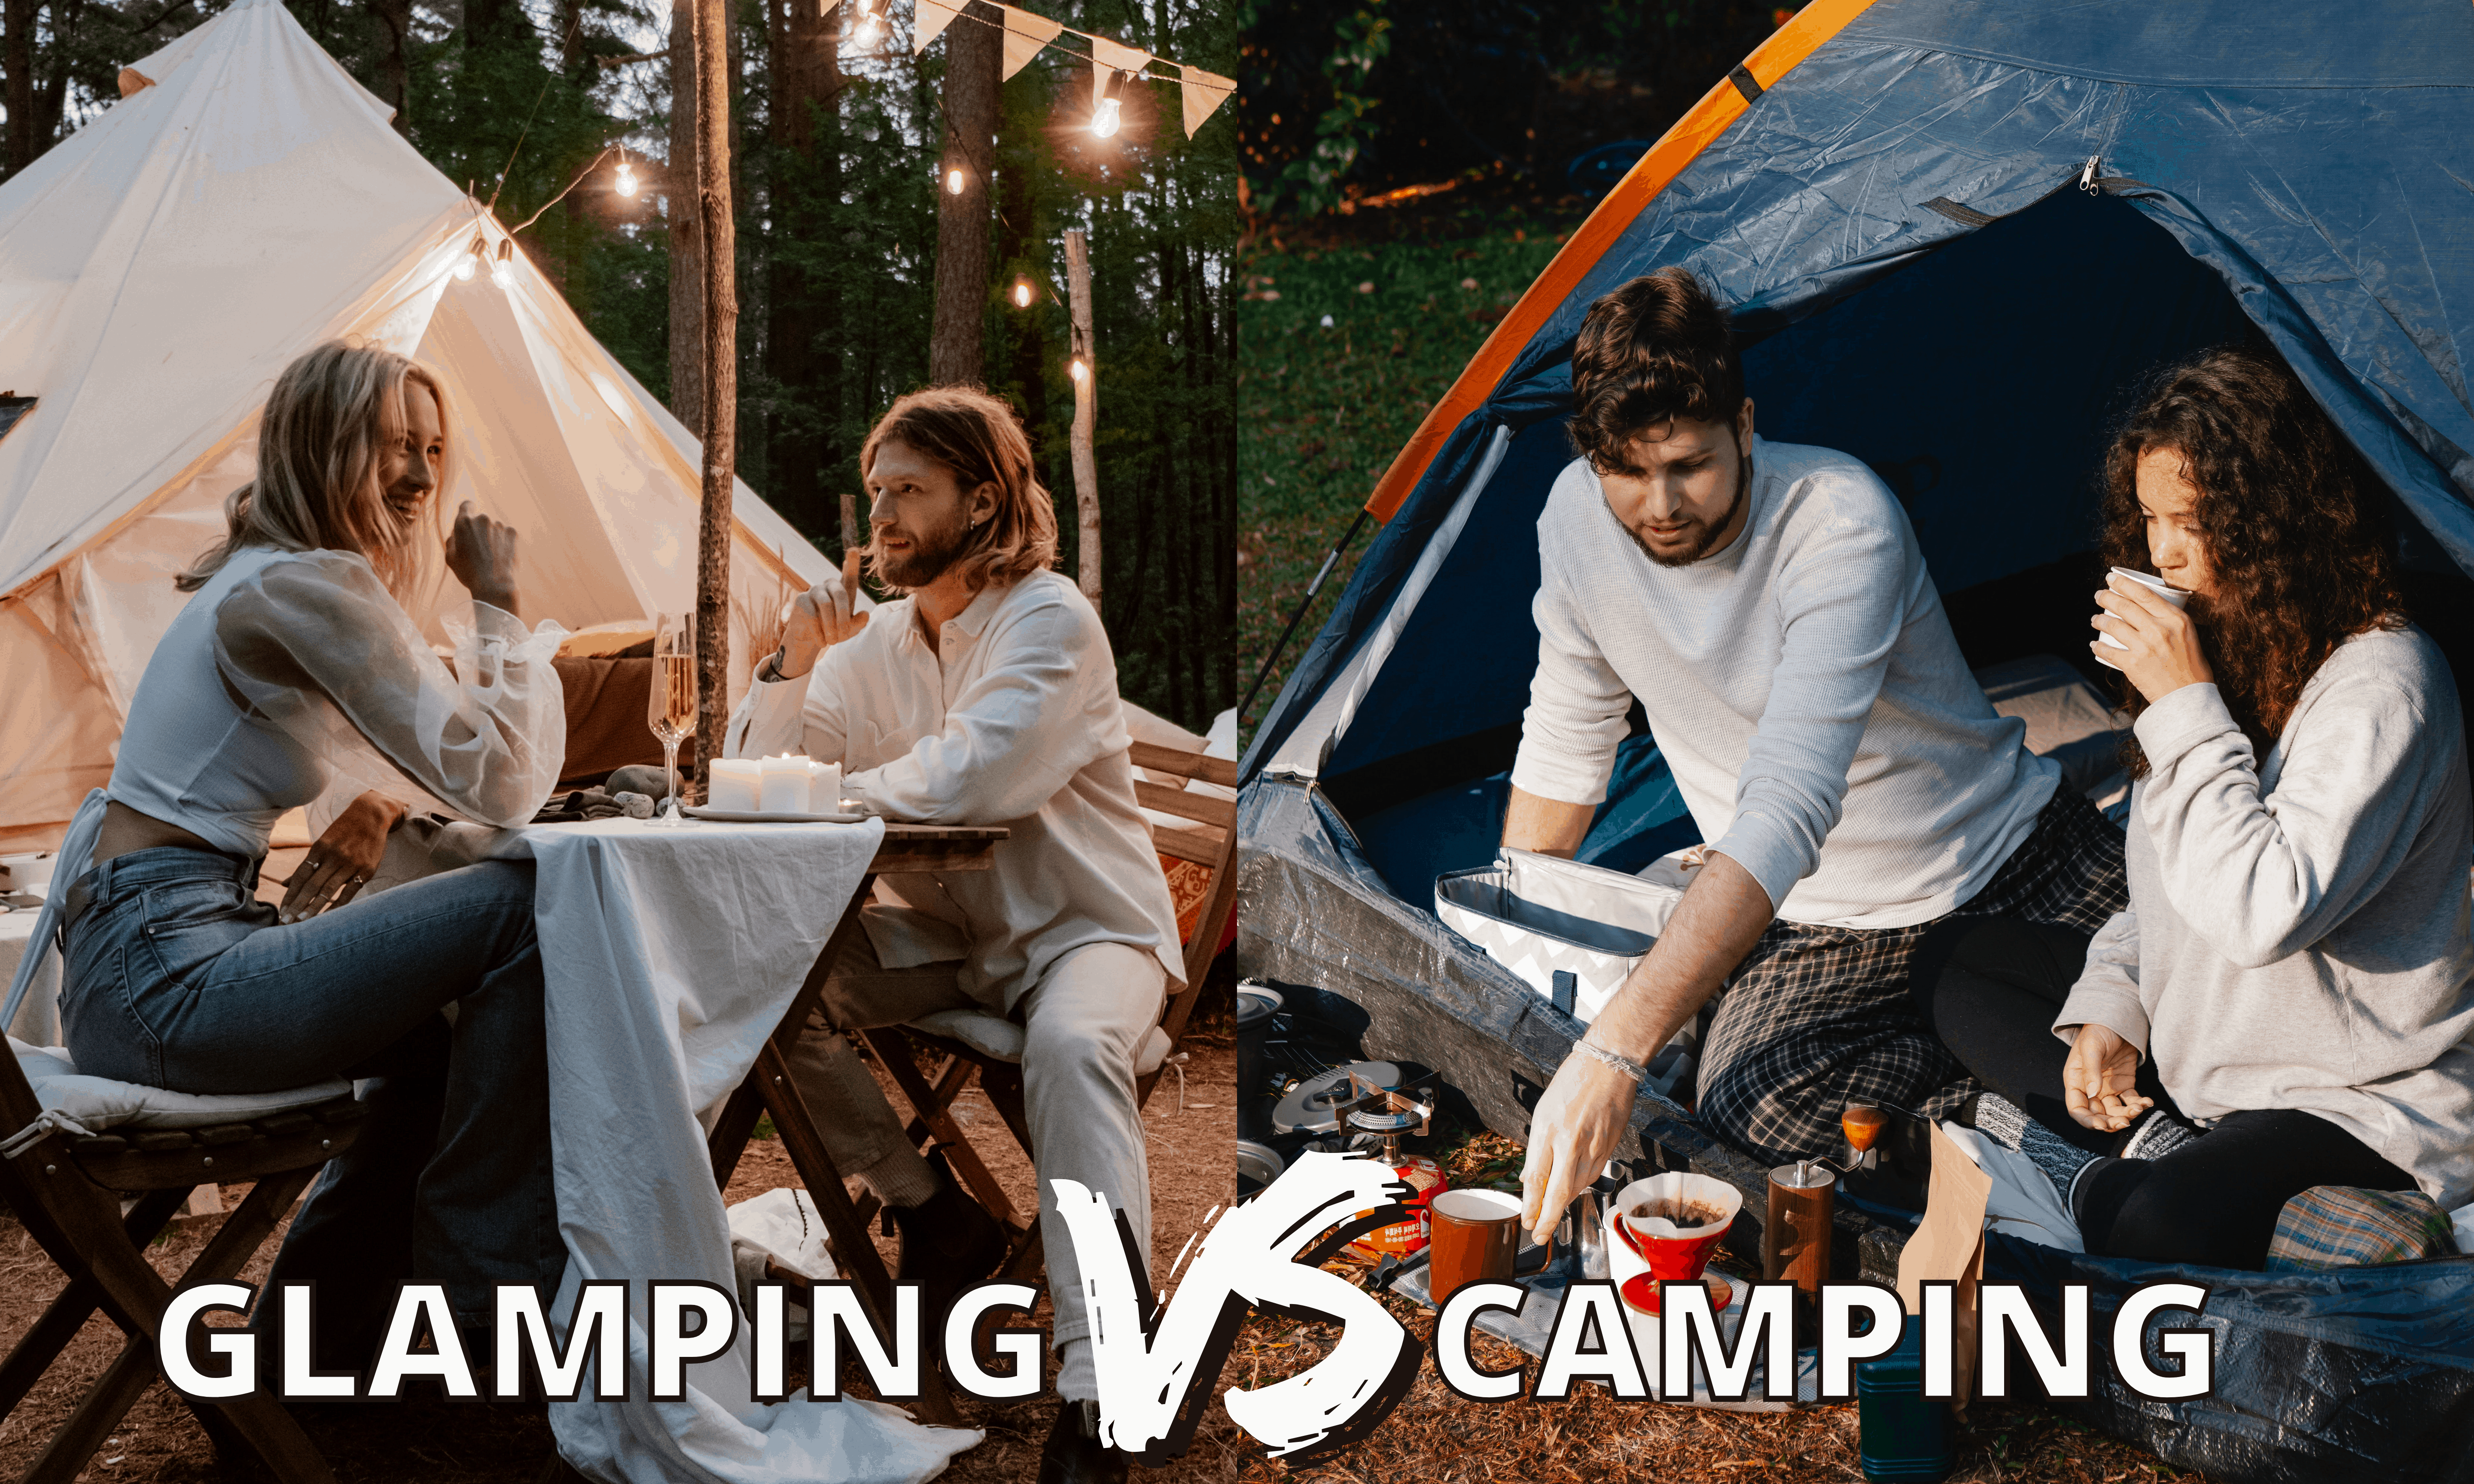 What's difference between glamping and camping? COMFORT.